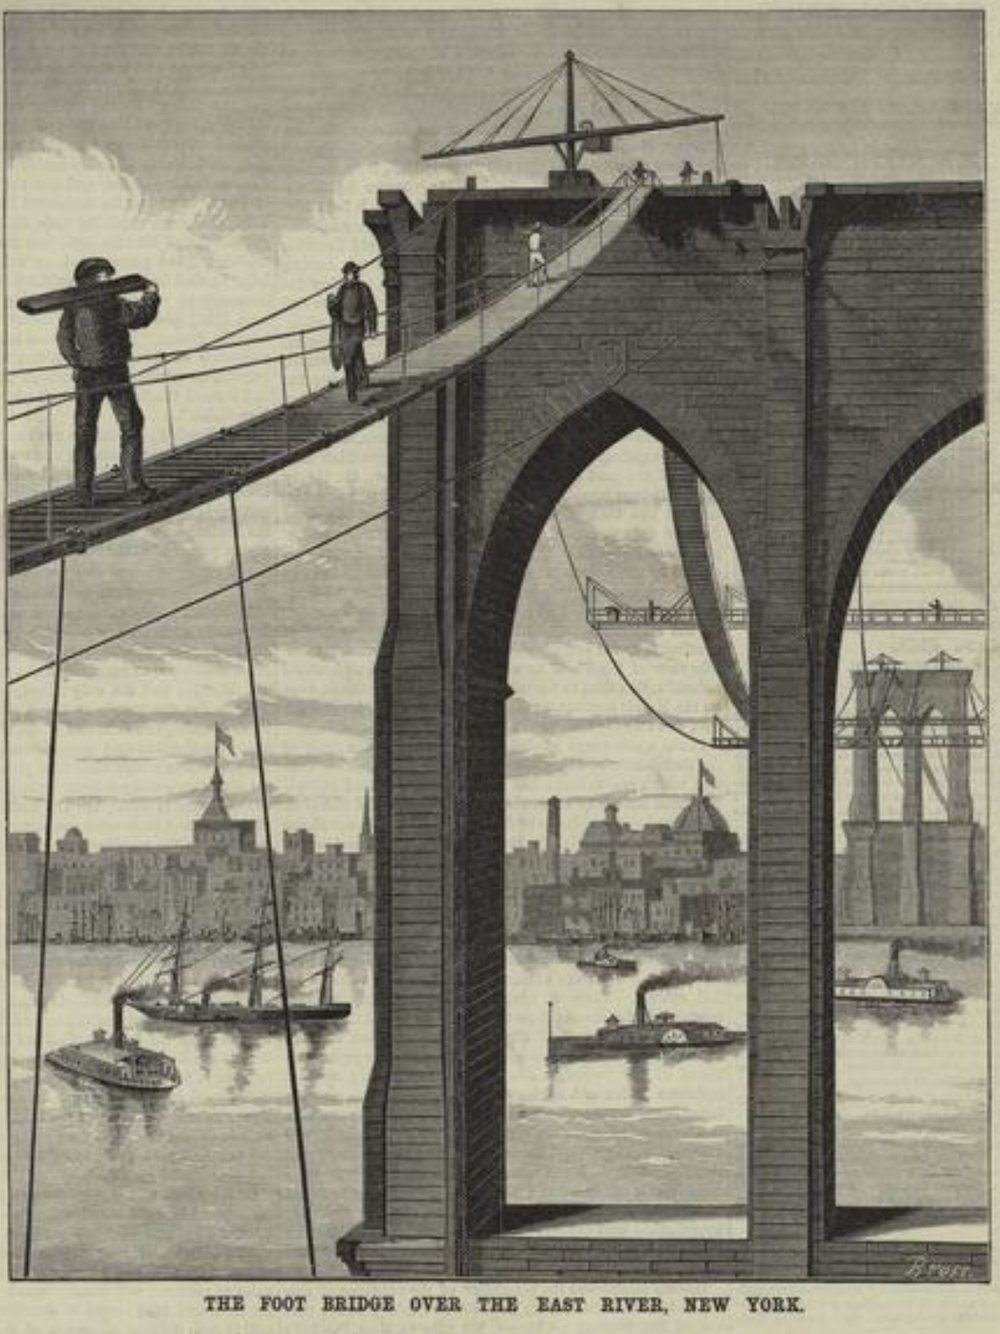 The first foot bridge over the East River on the Brooklyn Bridge.